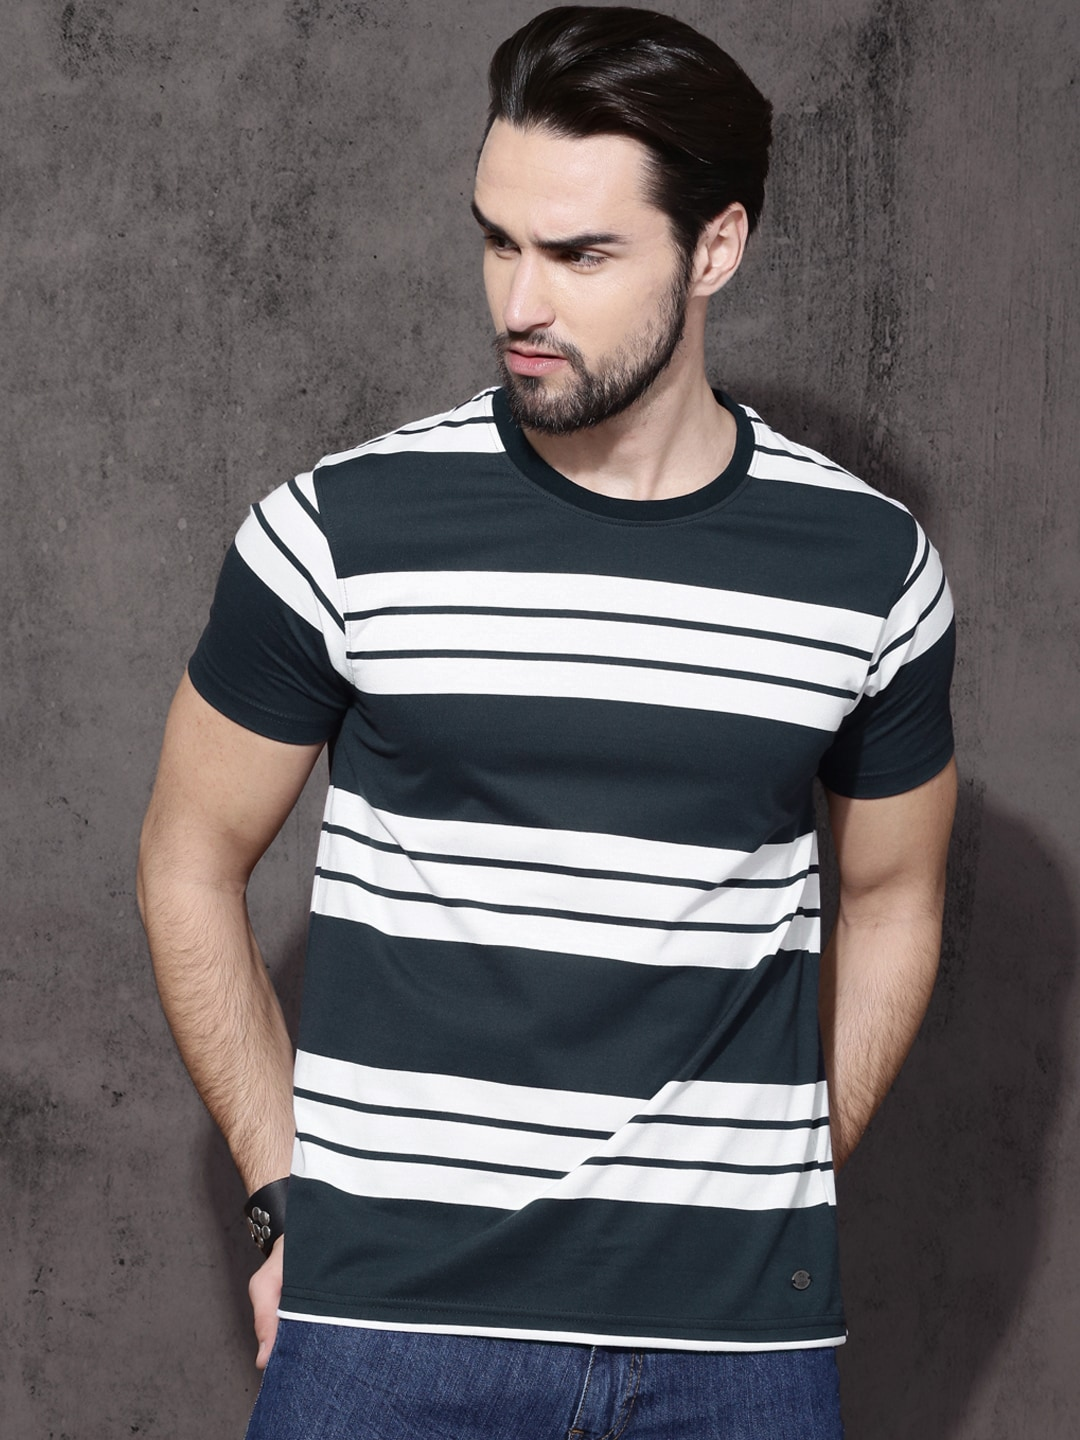 Buy Roadster White & Navy Blue Striped Round Neck Men's T-shirt At Best Price